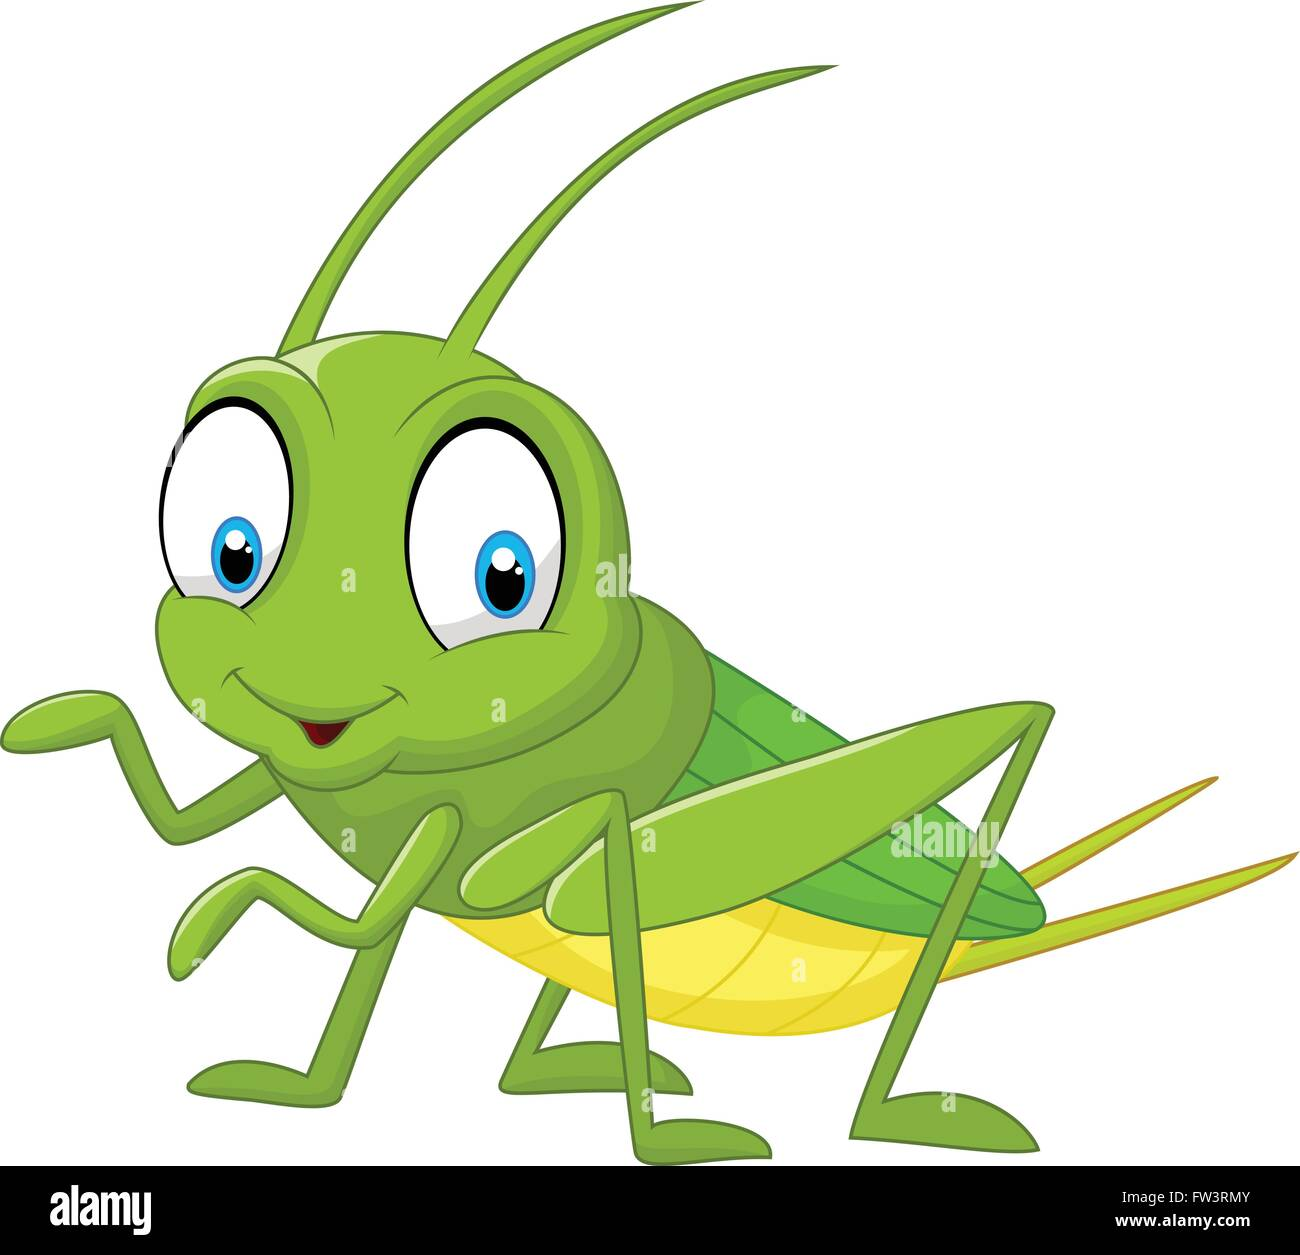 Animated cricket insect clip art world wide clip art website cricket insect cartoon pictures secondtofirst com rh secondtofirst com cricket insect drawing cartoon crickets insect cricket clipart ccuart Images